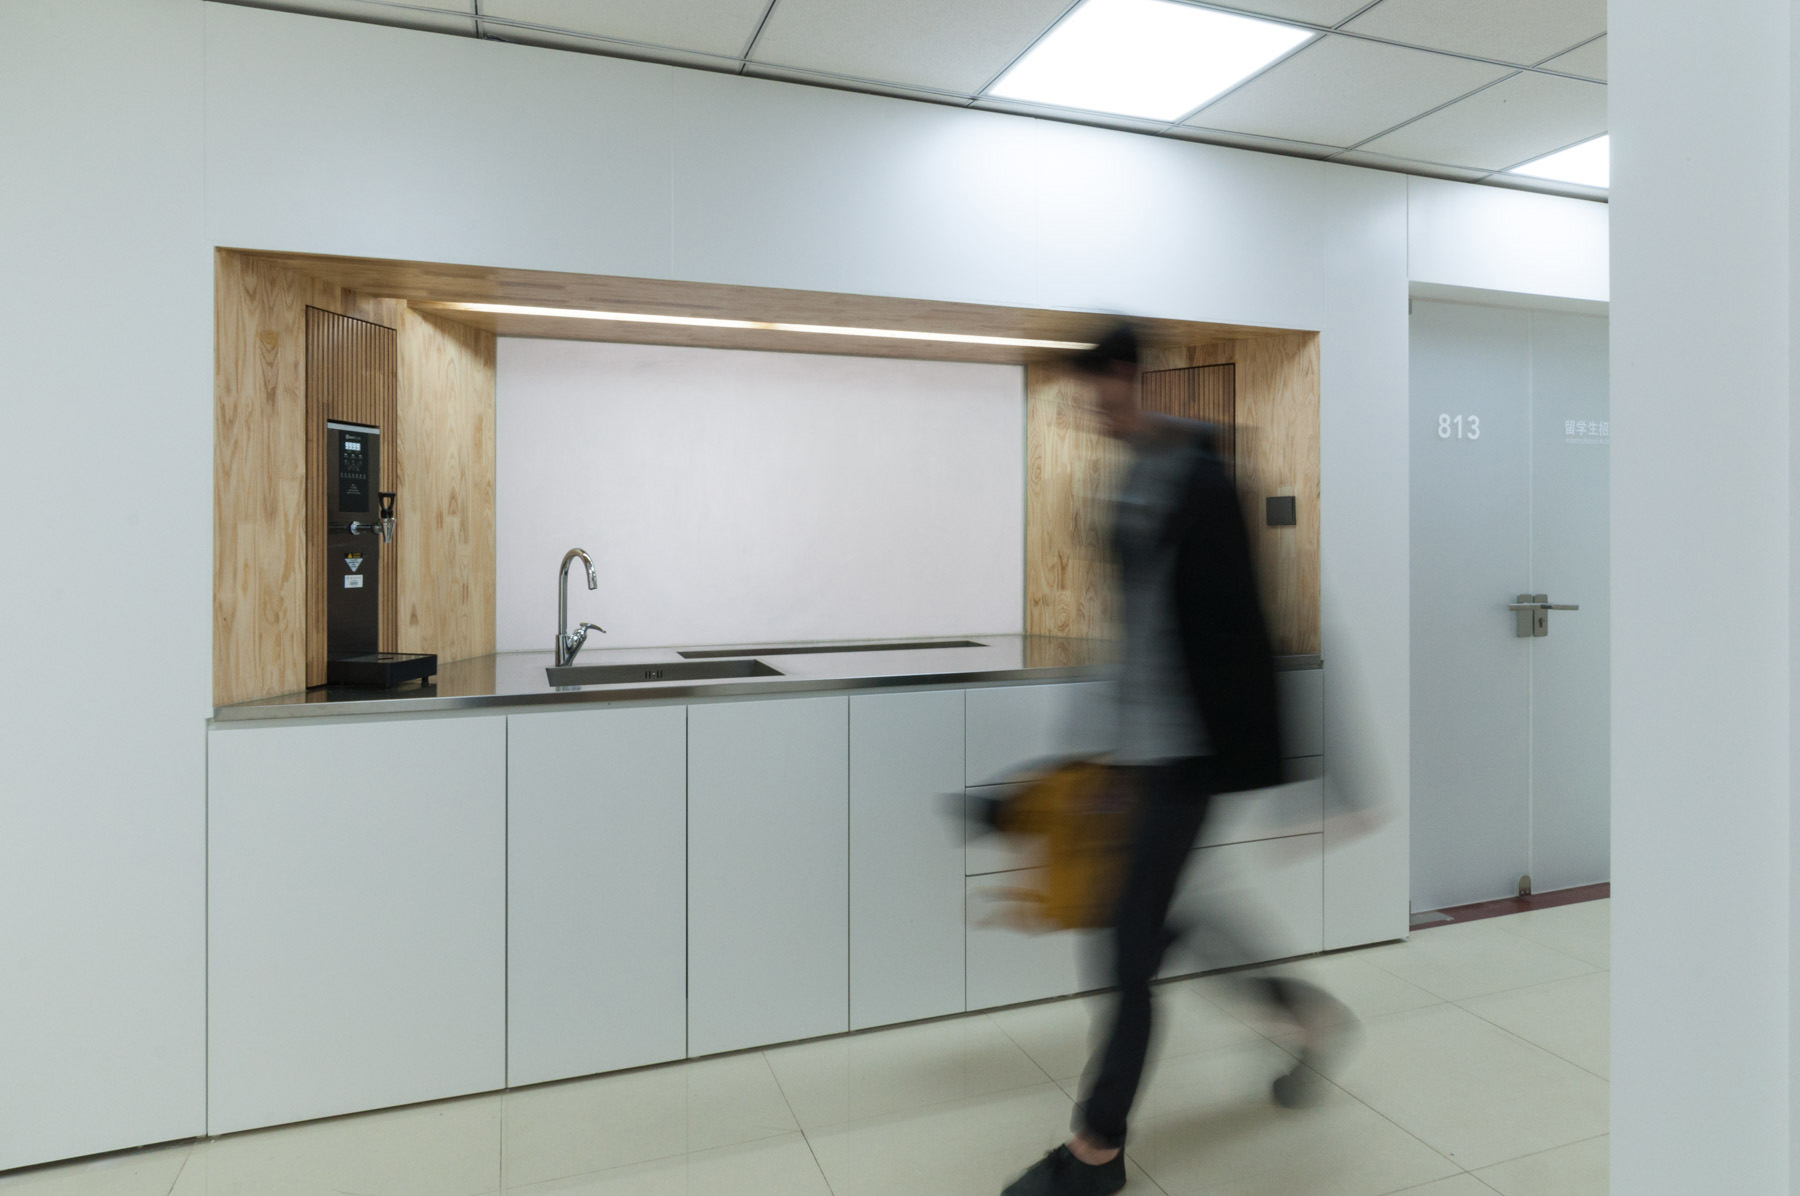 Kitchen counter with integrated hot water and coffee machines